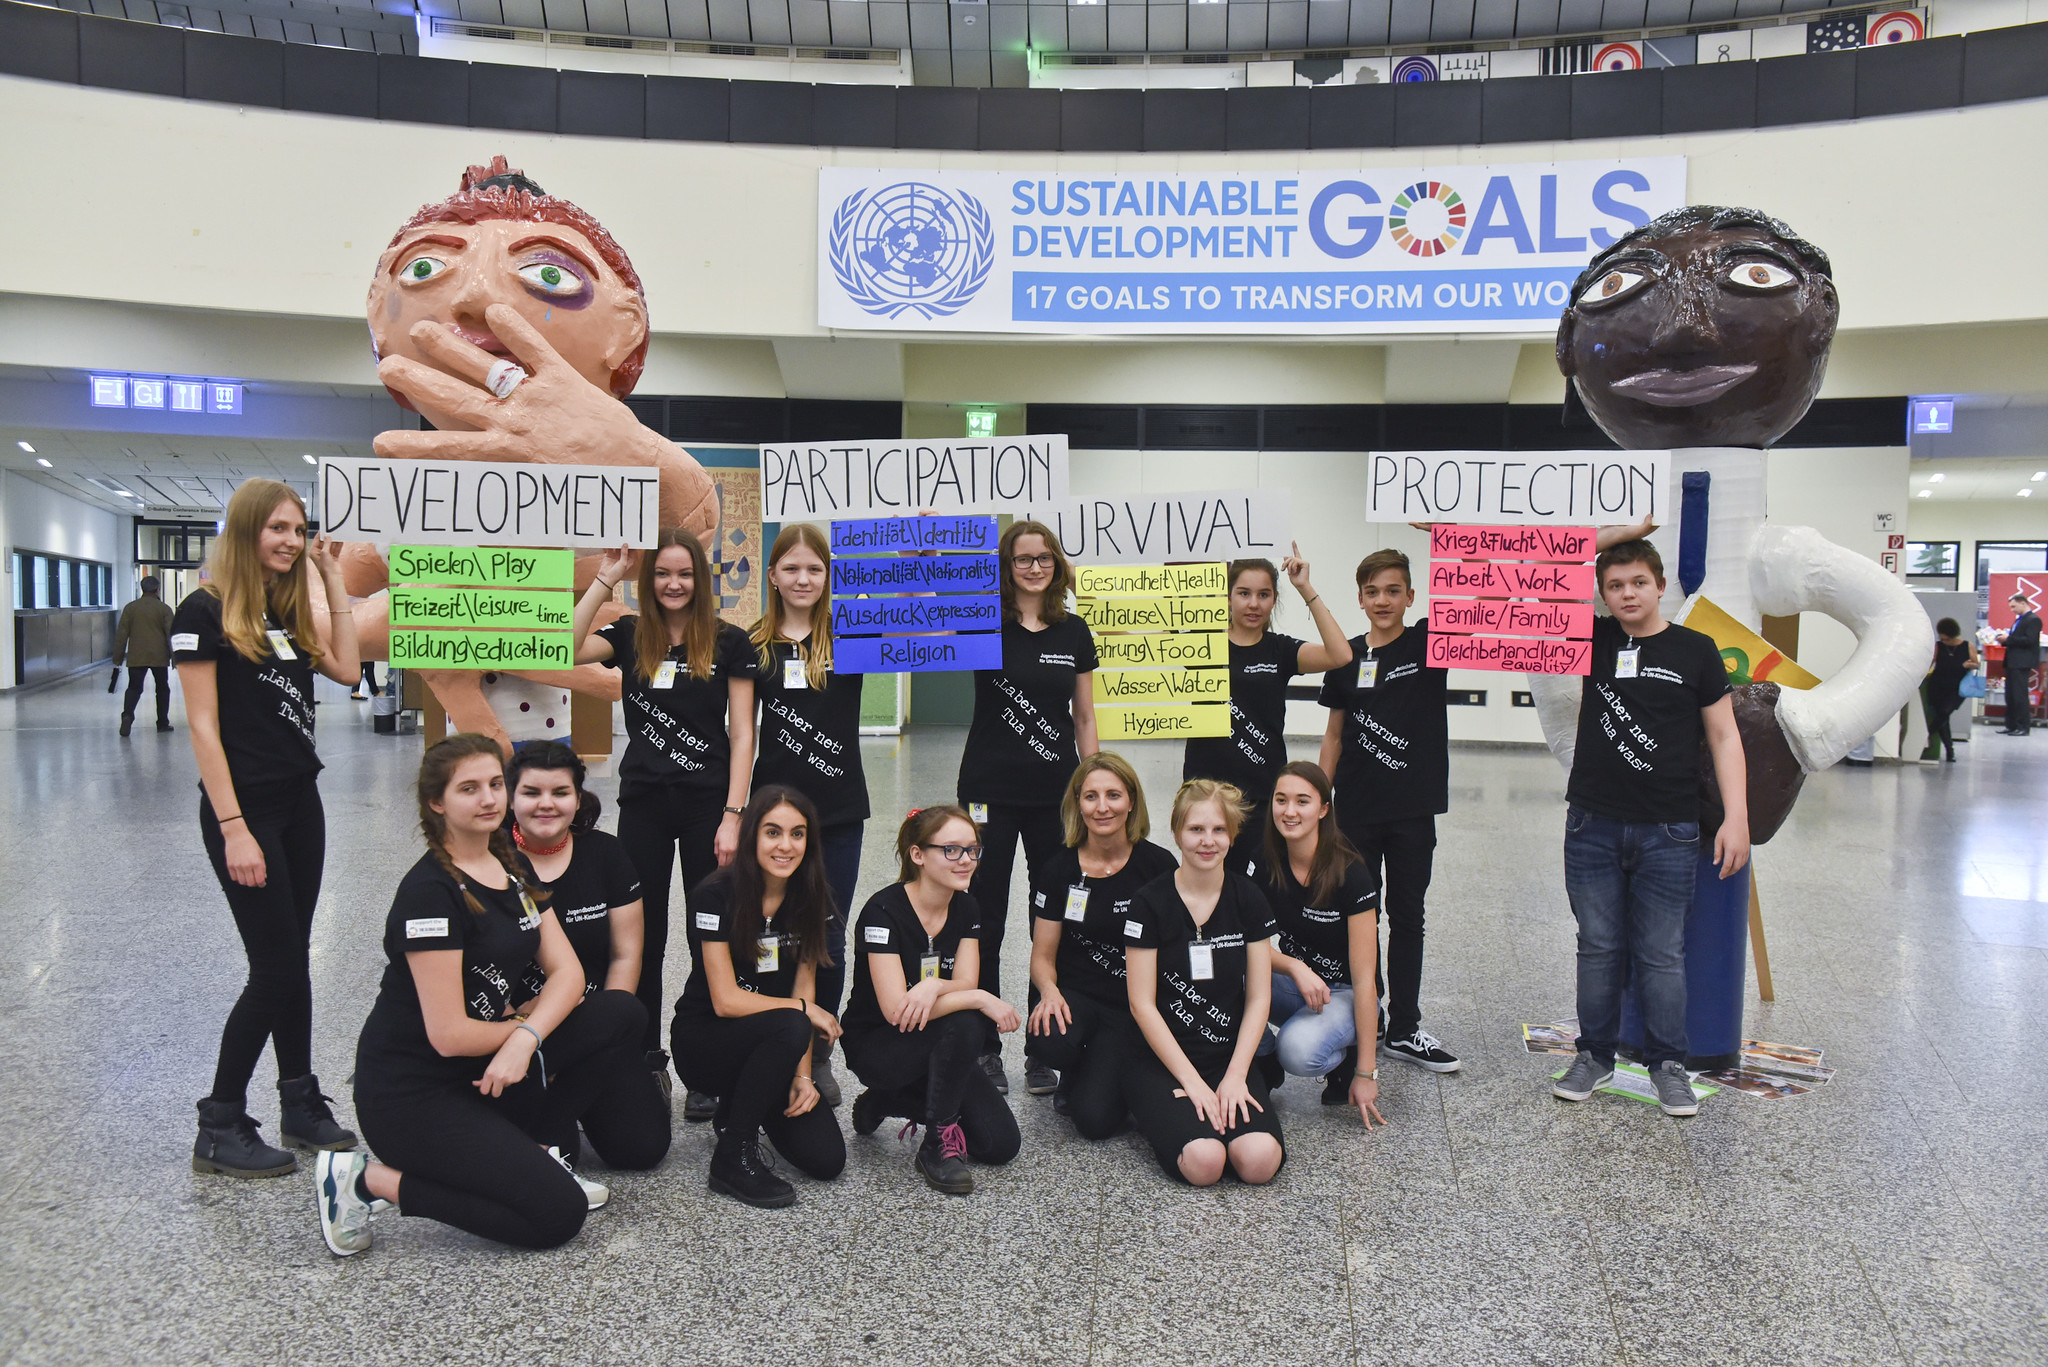 """Exhibition """"Giant Children representing the UN-Convention on the Rights of the Child"""""""